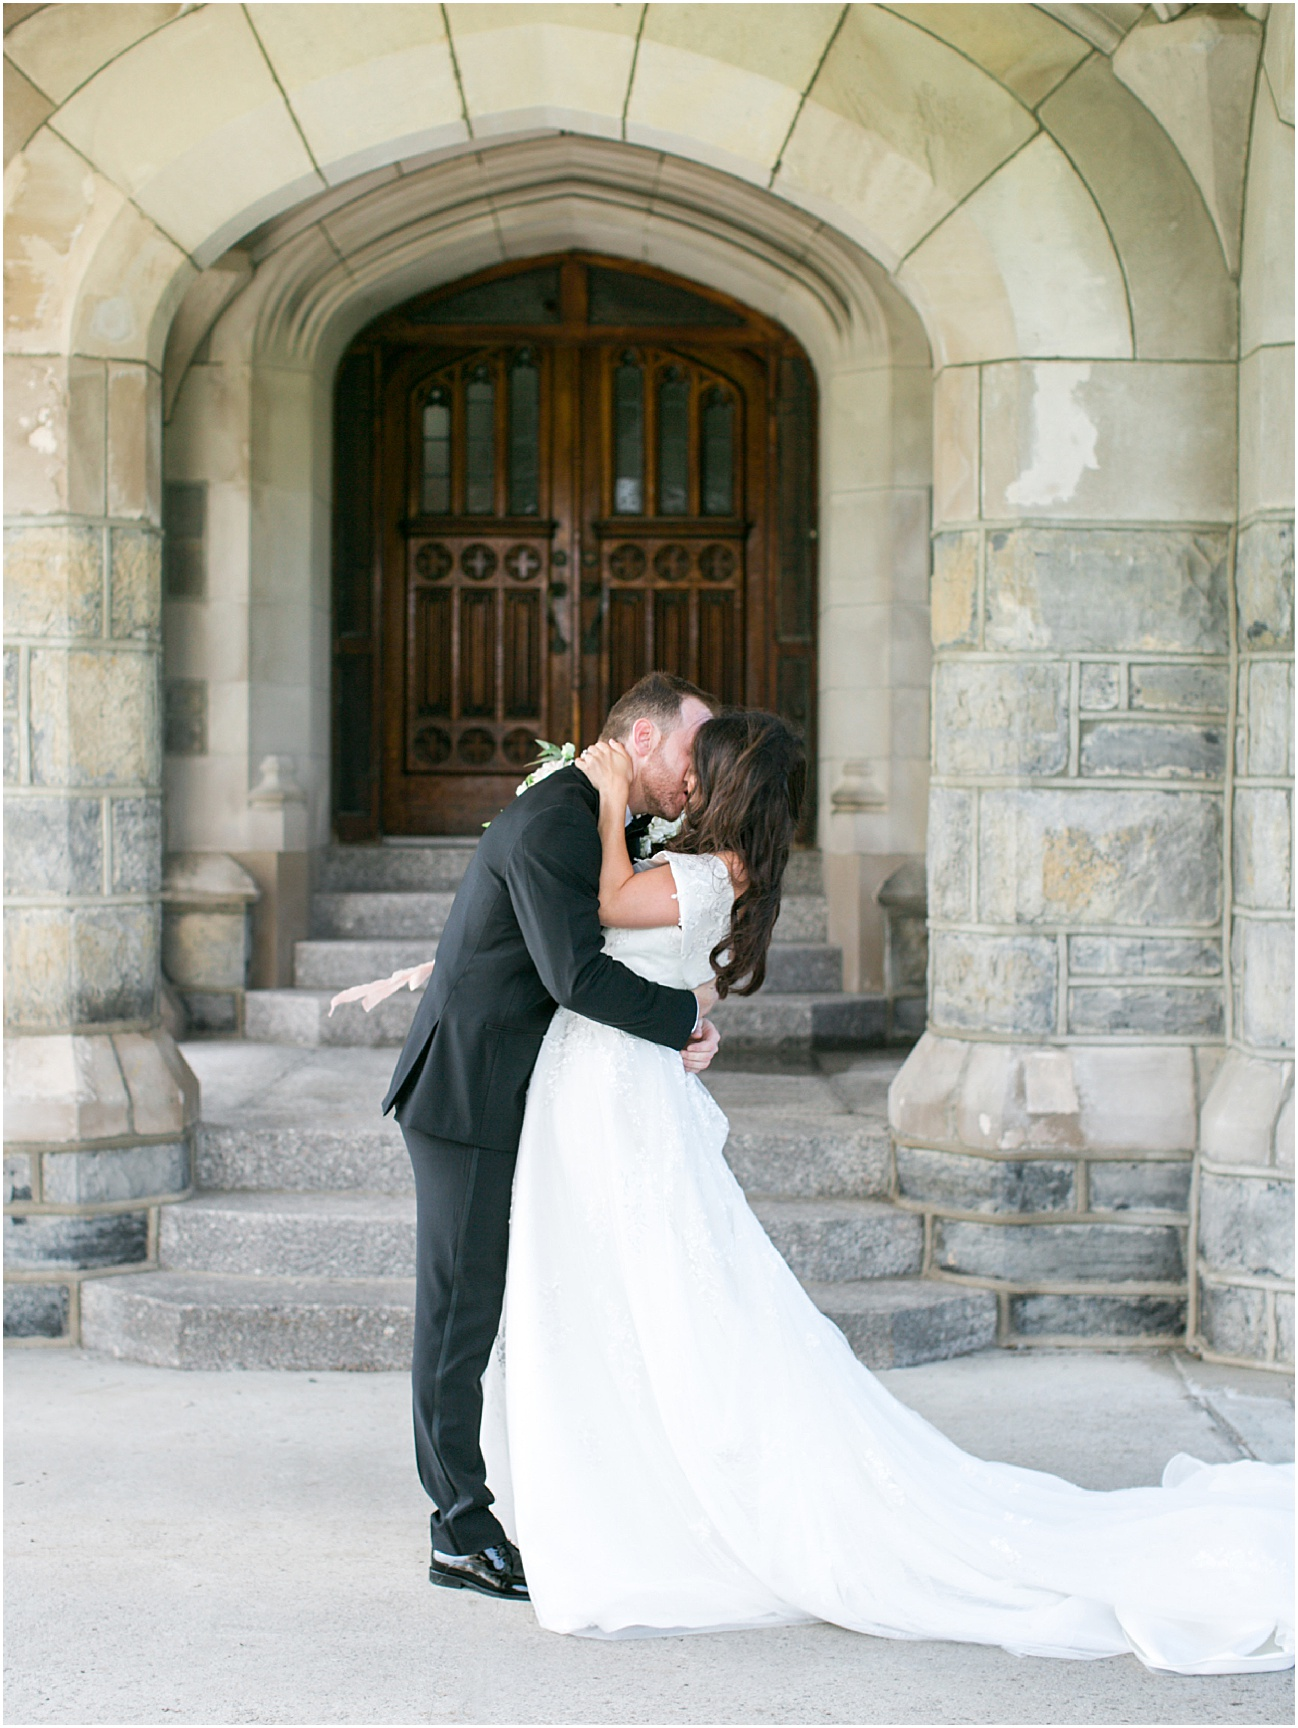 our_wedding_day_troy_NY_emma_willard_fairy_tale_royal_neutral_beauty_and_the_beast_moped_private_estate_cape_cod_boston_wedding_photographer_meredith_jane_photography_chris_kerr_photo_1963.jpg